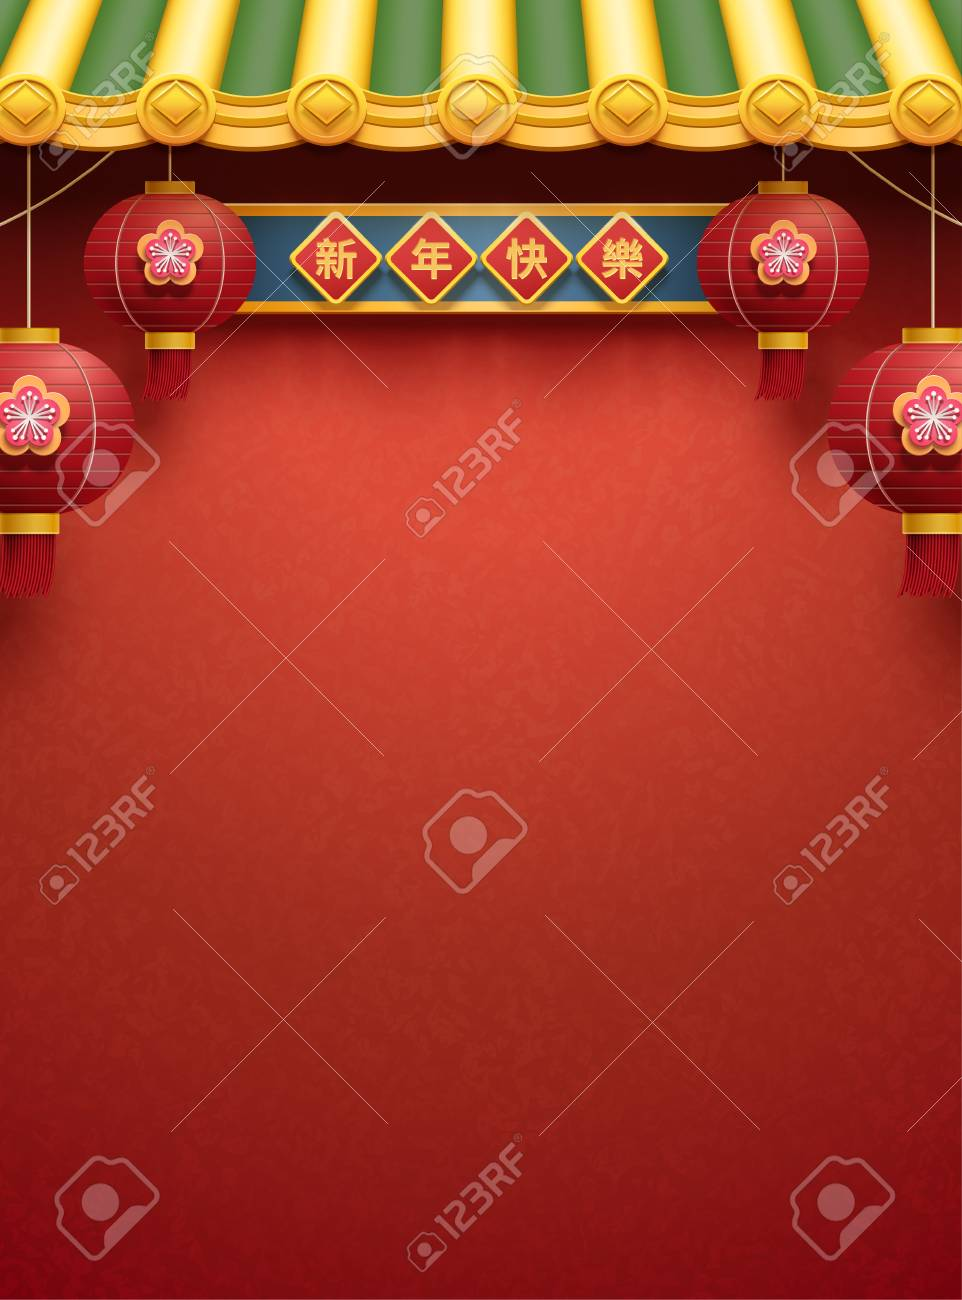 Traditional Chinese roof with red lanterns and wall for design uses, Happy new year words written in Chinese characters on the spring couplet - 127631277